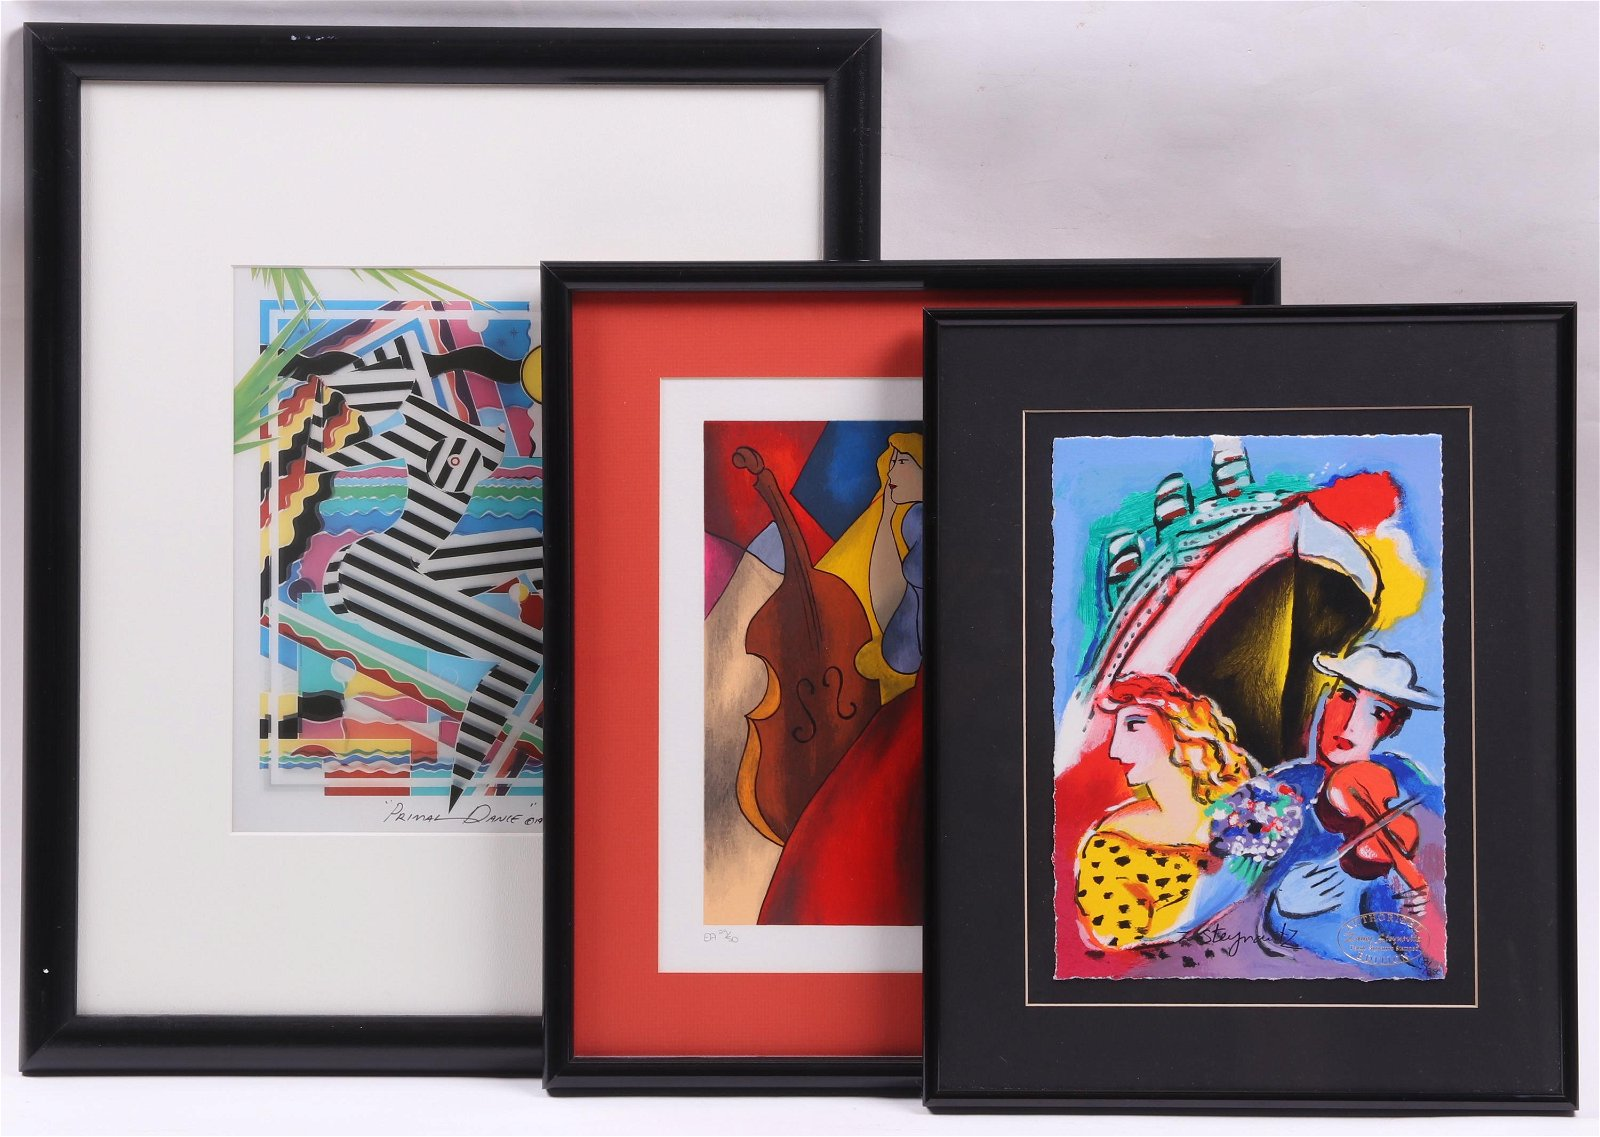 Three Signed Modern Abstract Prints